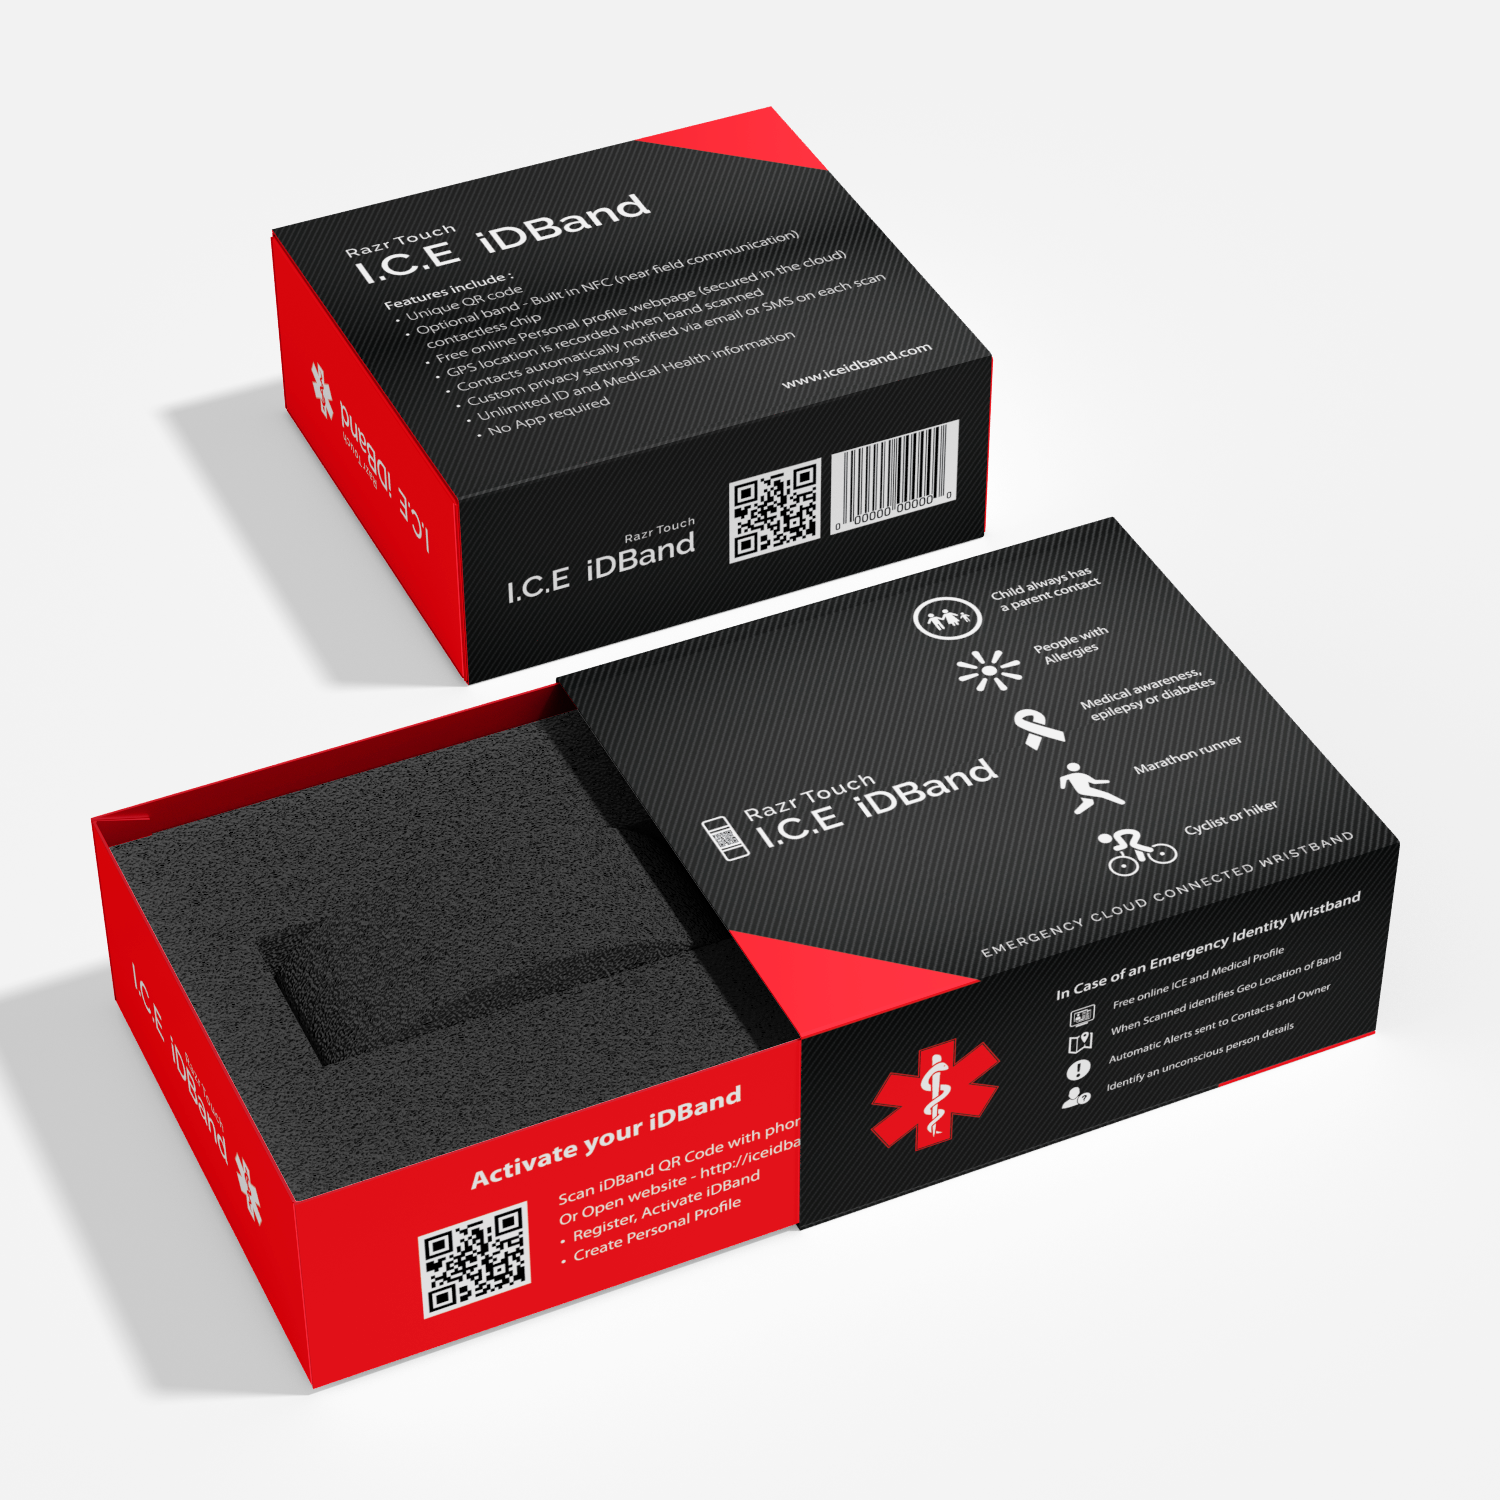 Package Design for a new Modern Product - I.C.E iDBand